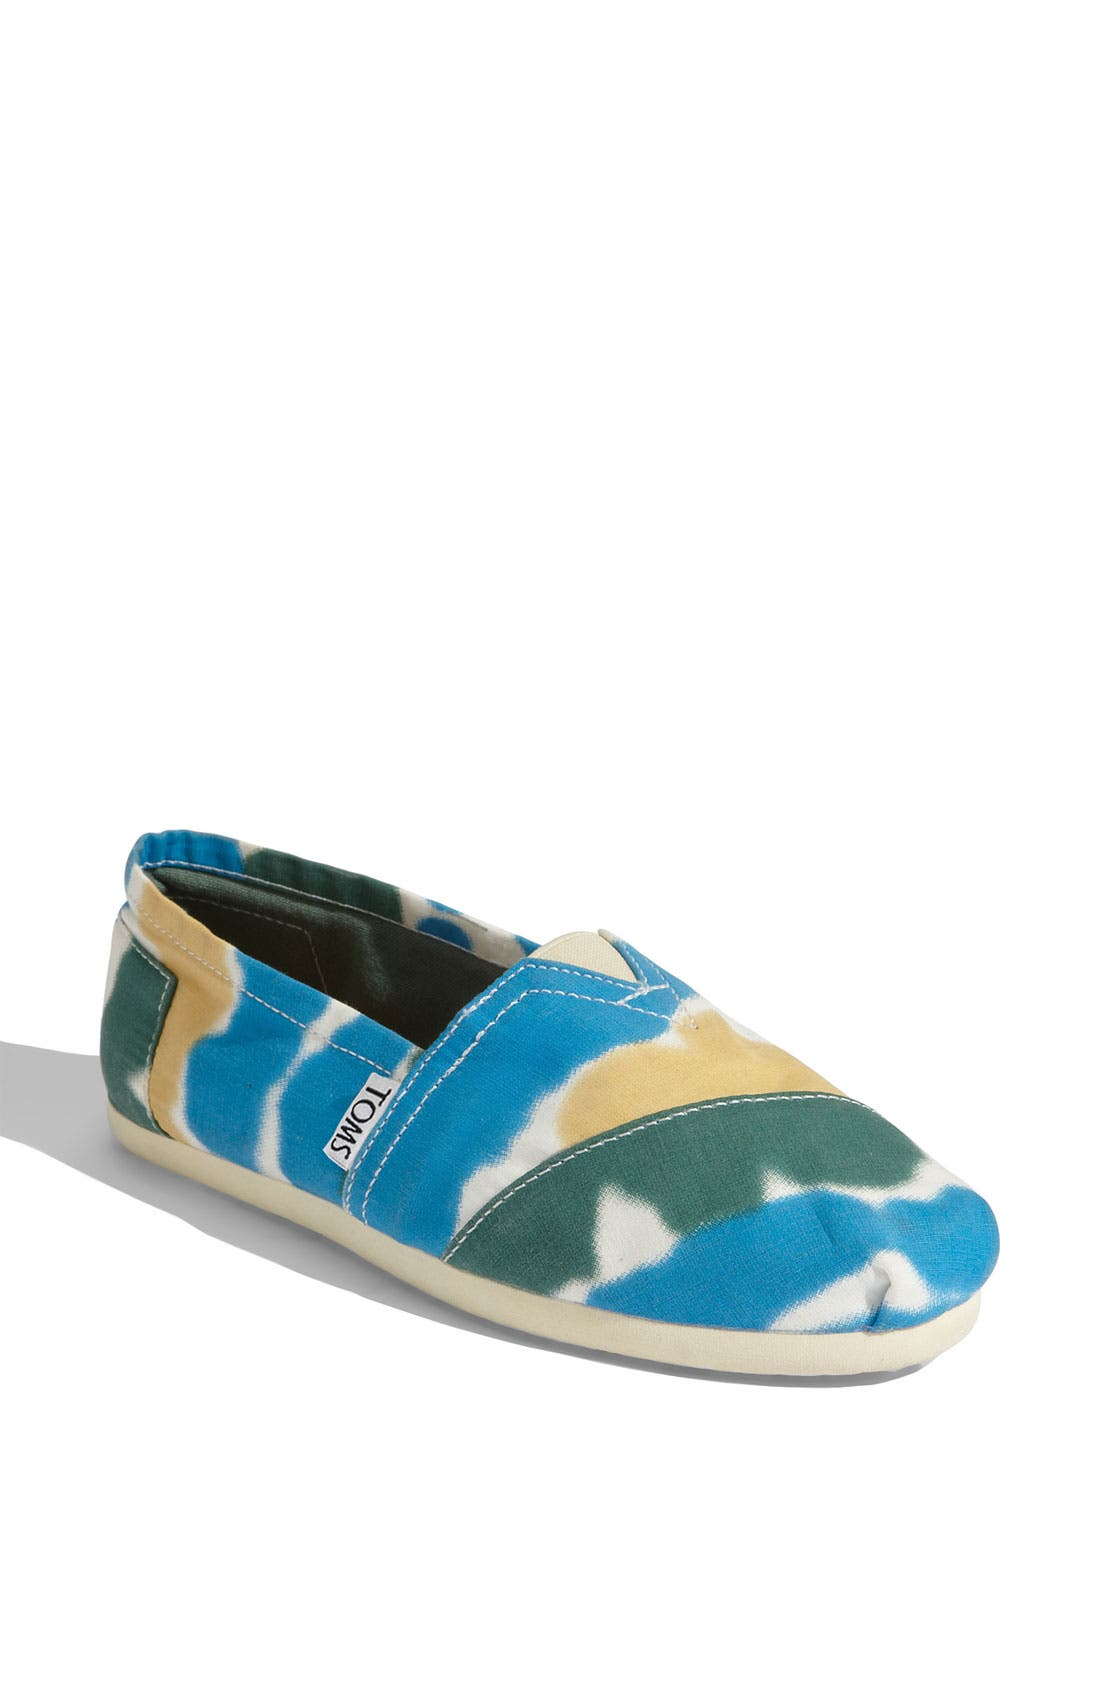 Main Image - TOMS Tie Dye Canvas Slip-On (Women) (Nordstrom Exclusive)